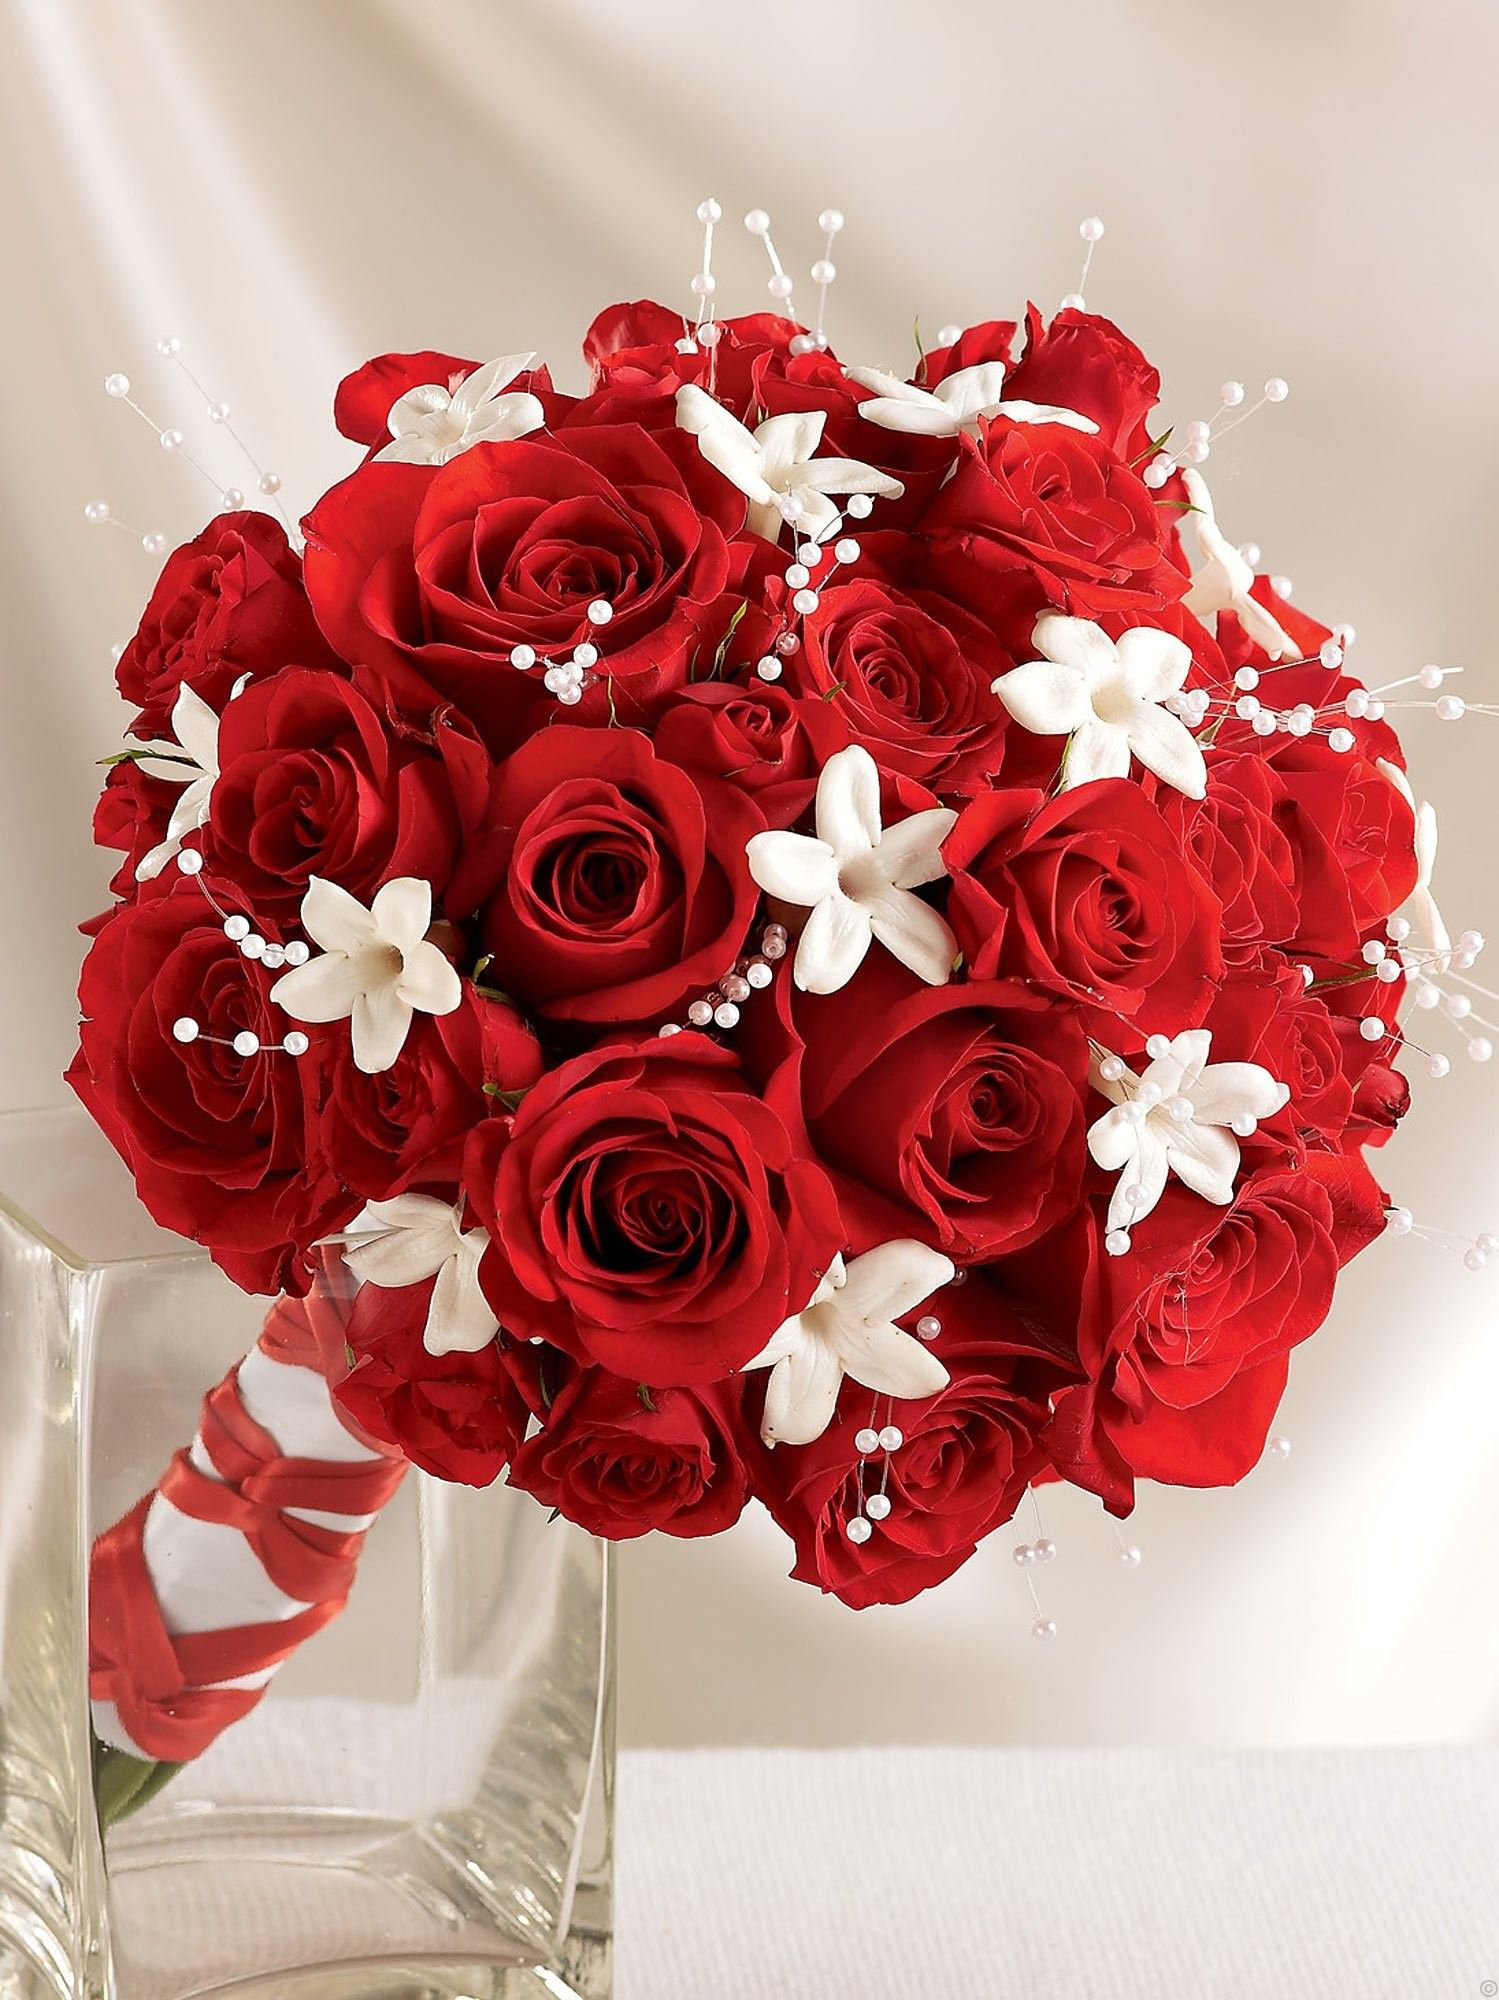 Google theme rose - Pink And Red Rose Bouquet Google Search